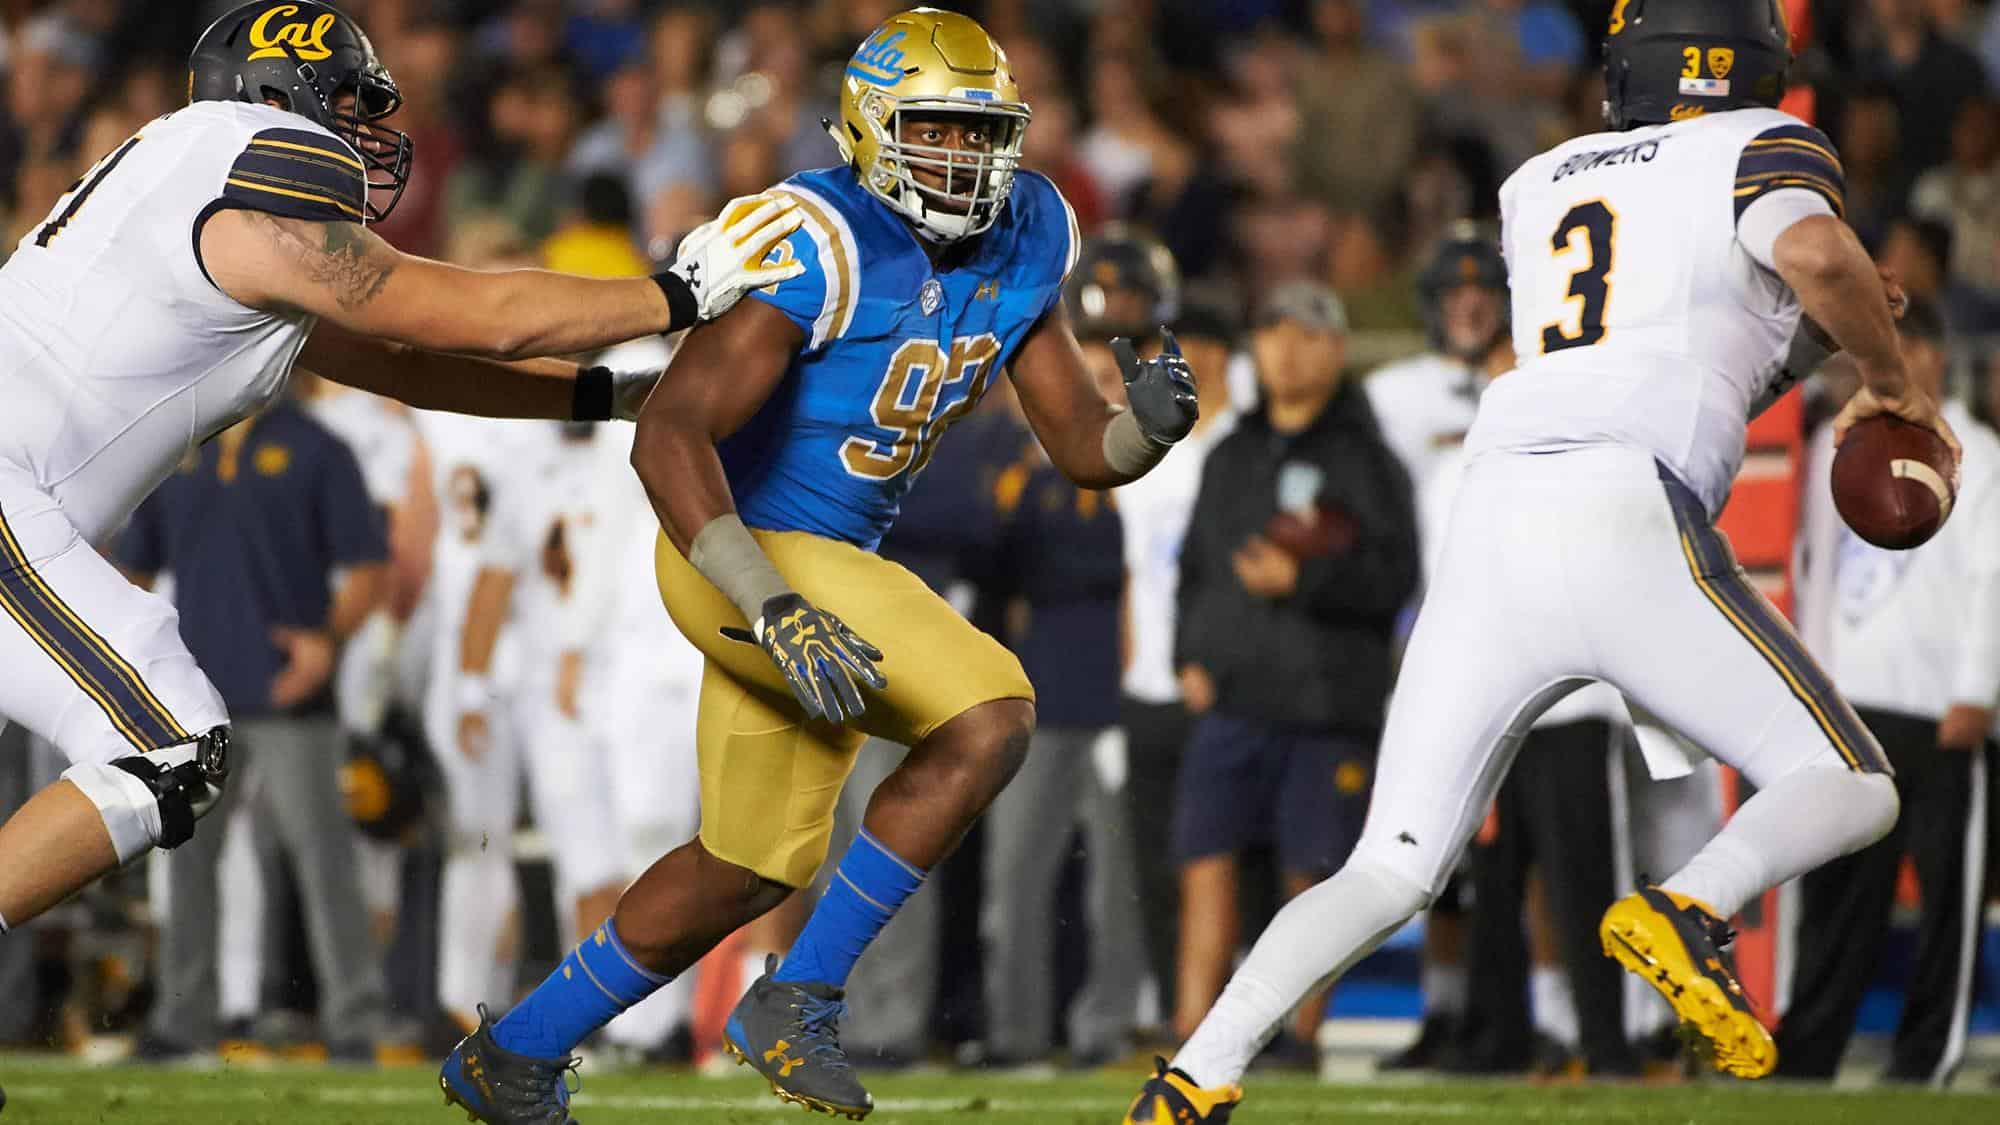 UCLA defensive tackle Osa Odighizuwa is a high upside pass rusher